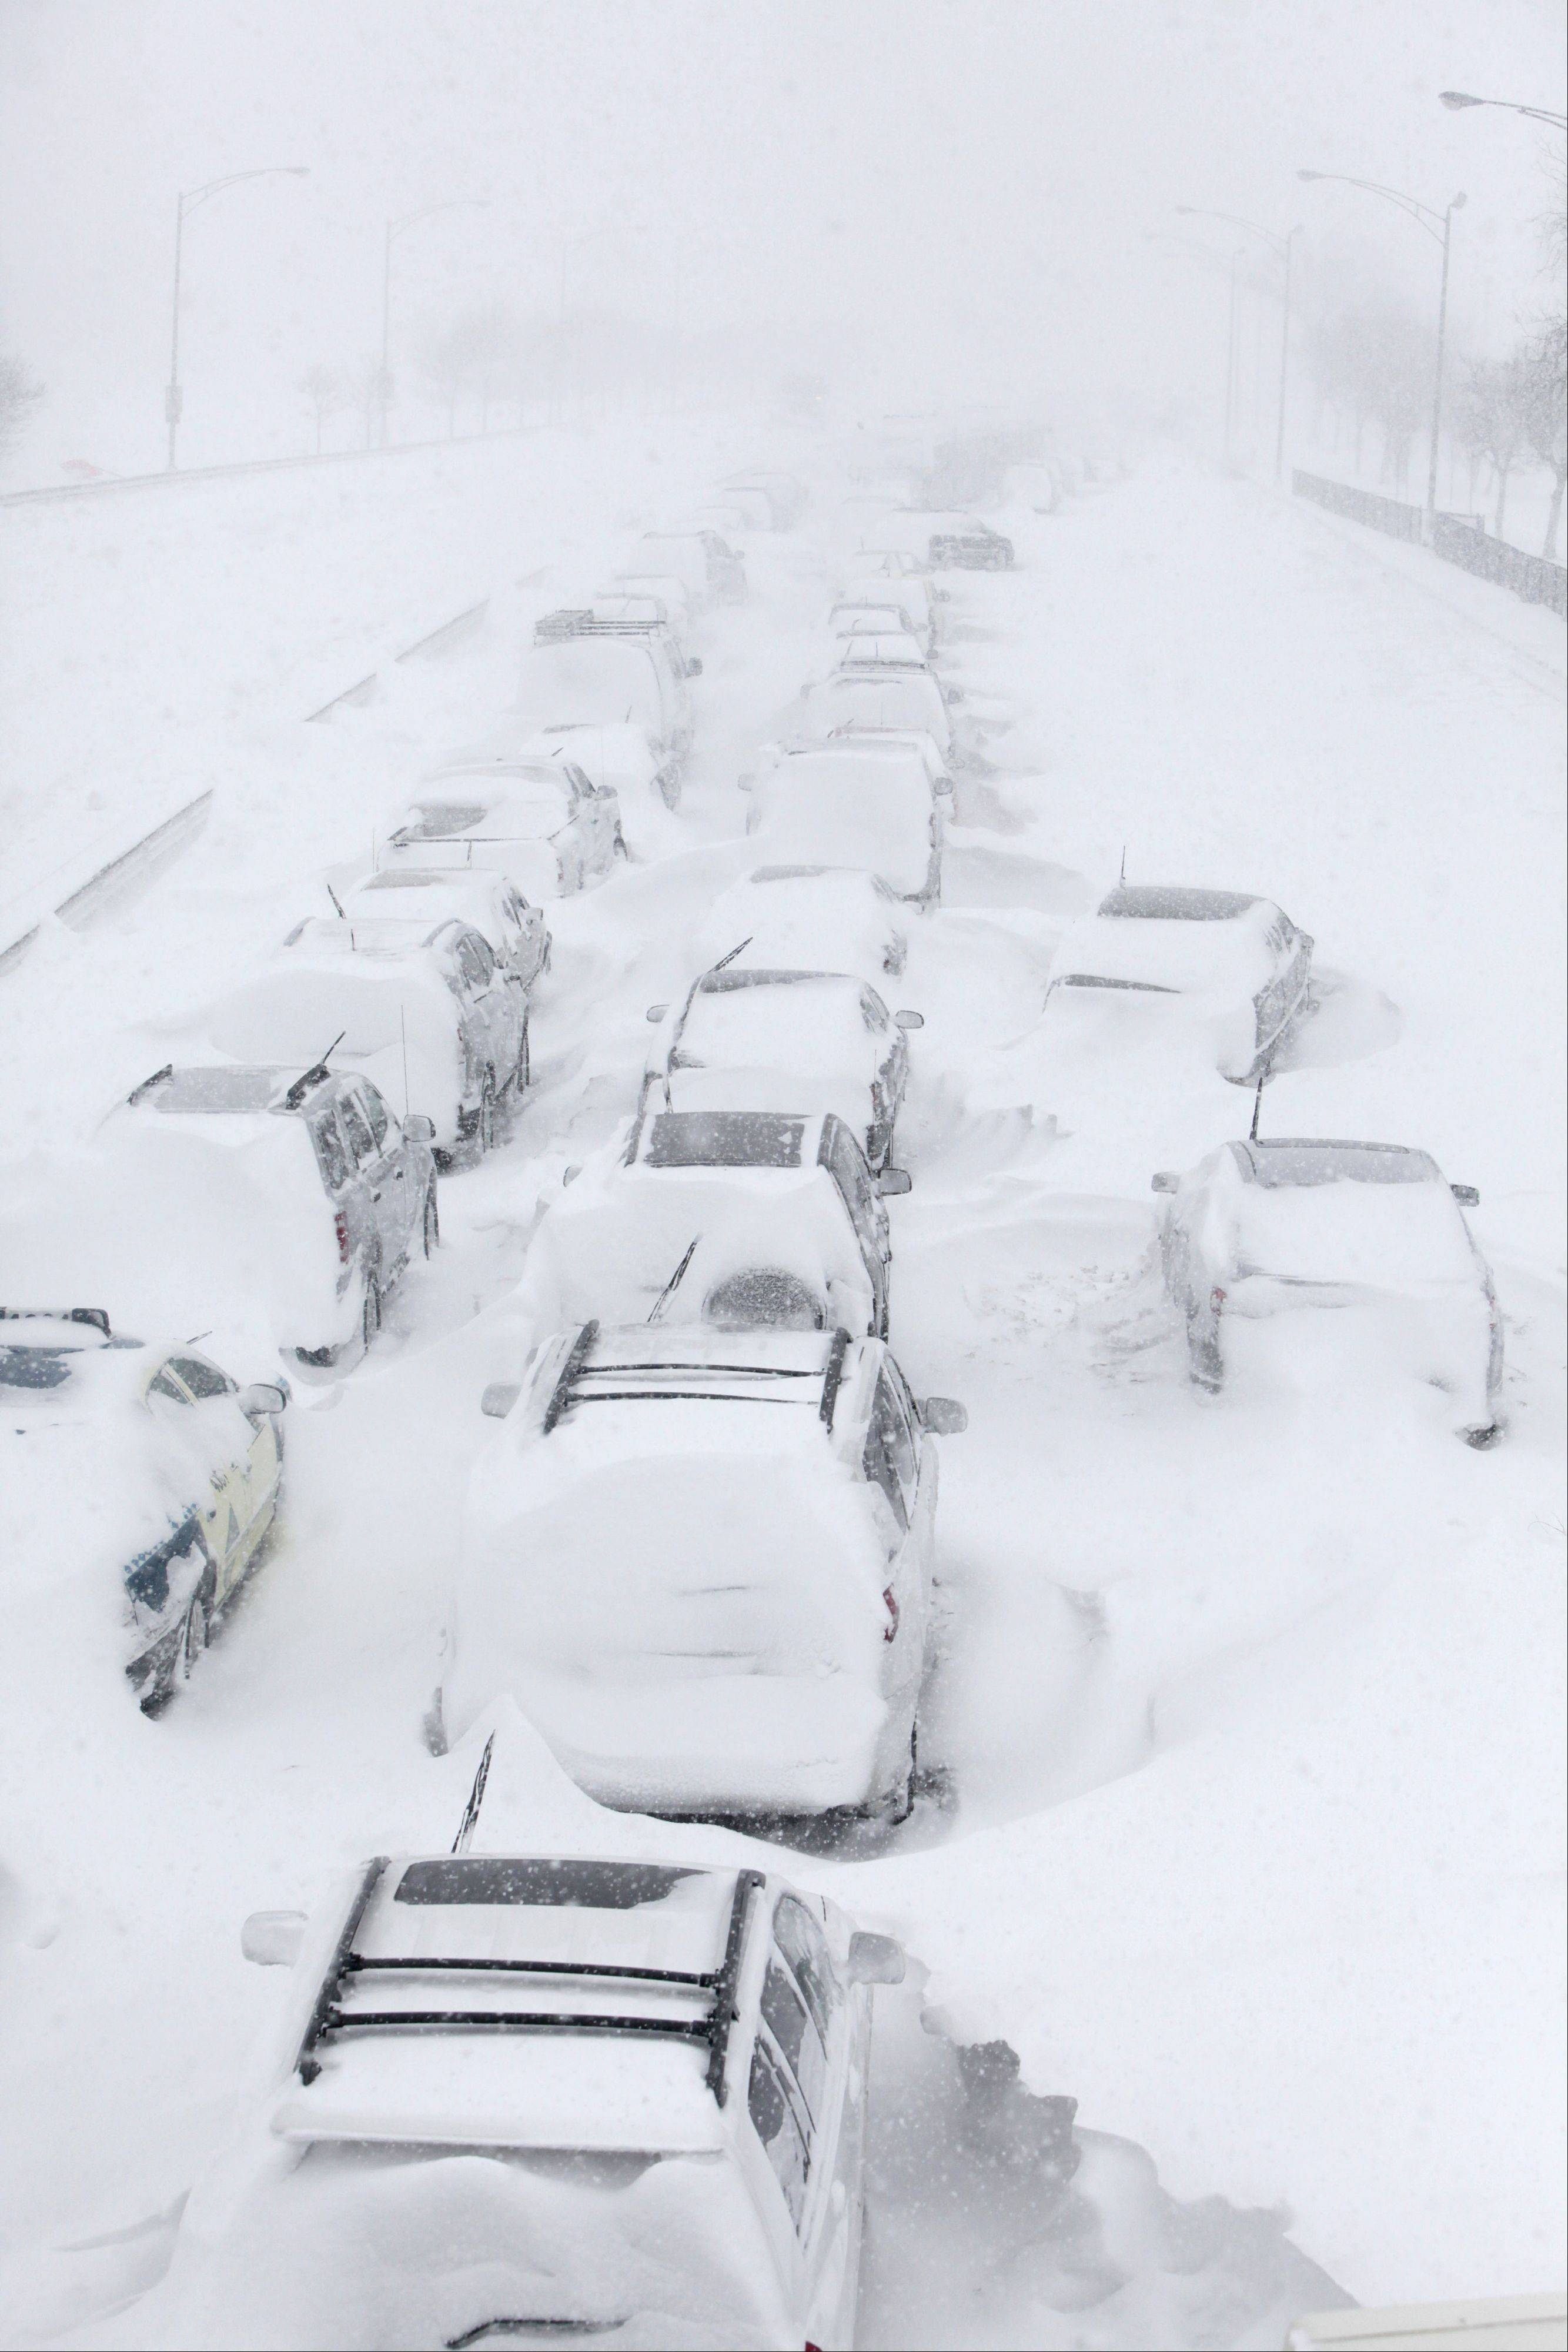 Hundreds of cars were stranded on Lake Shore Drive in Chicago on Feb. 2, 2011.